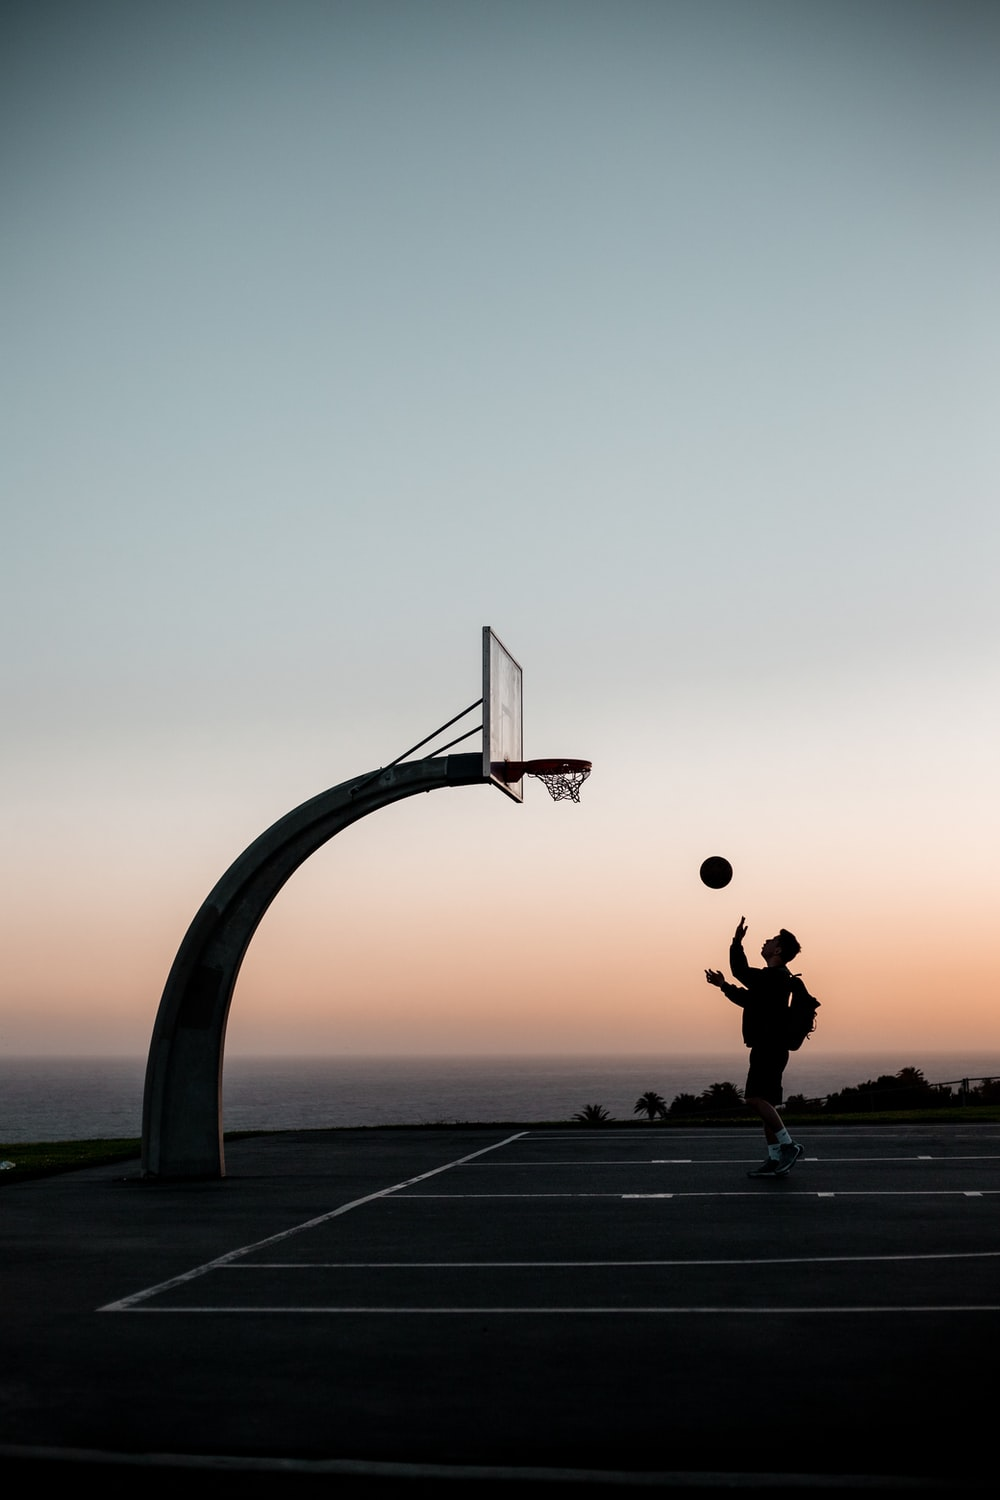 man in black jacket and pants playing basketball during sunset